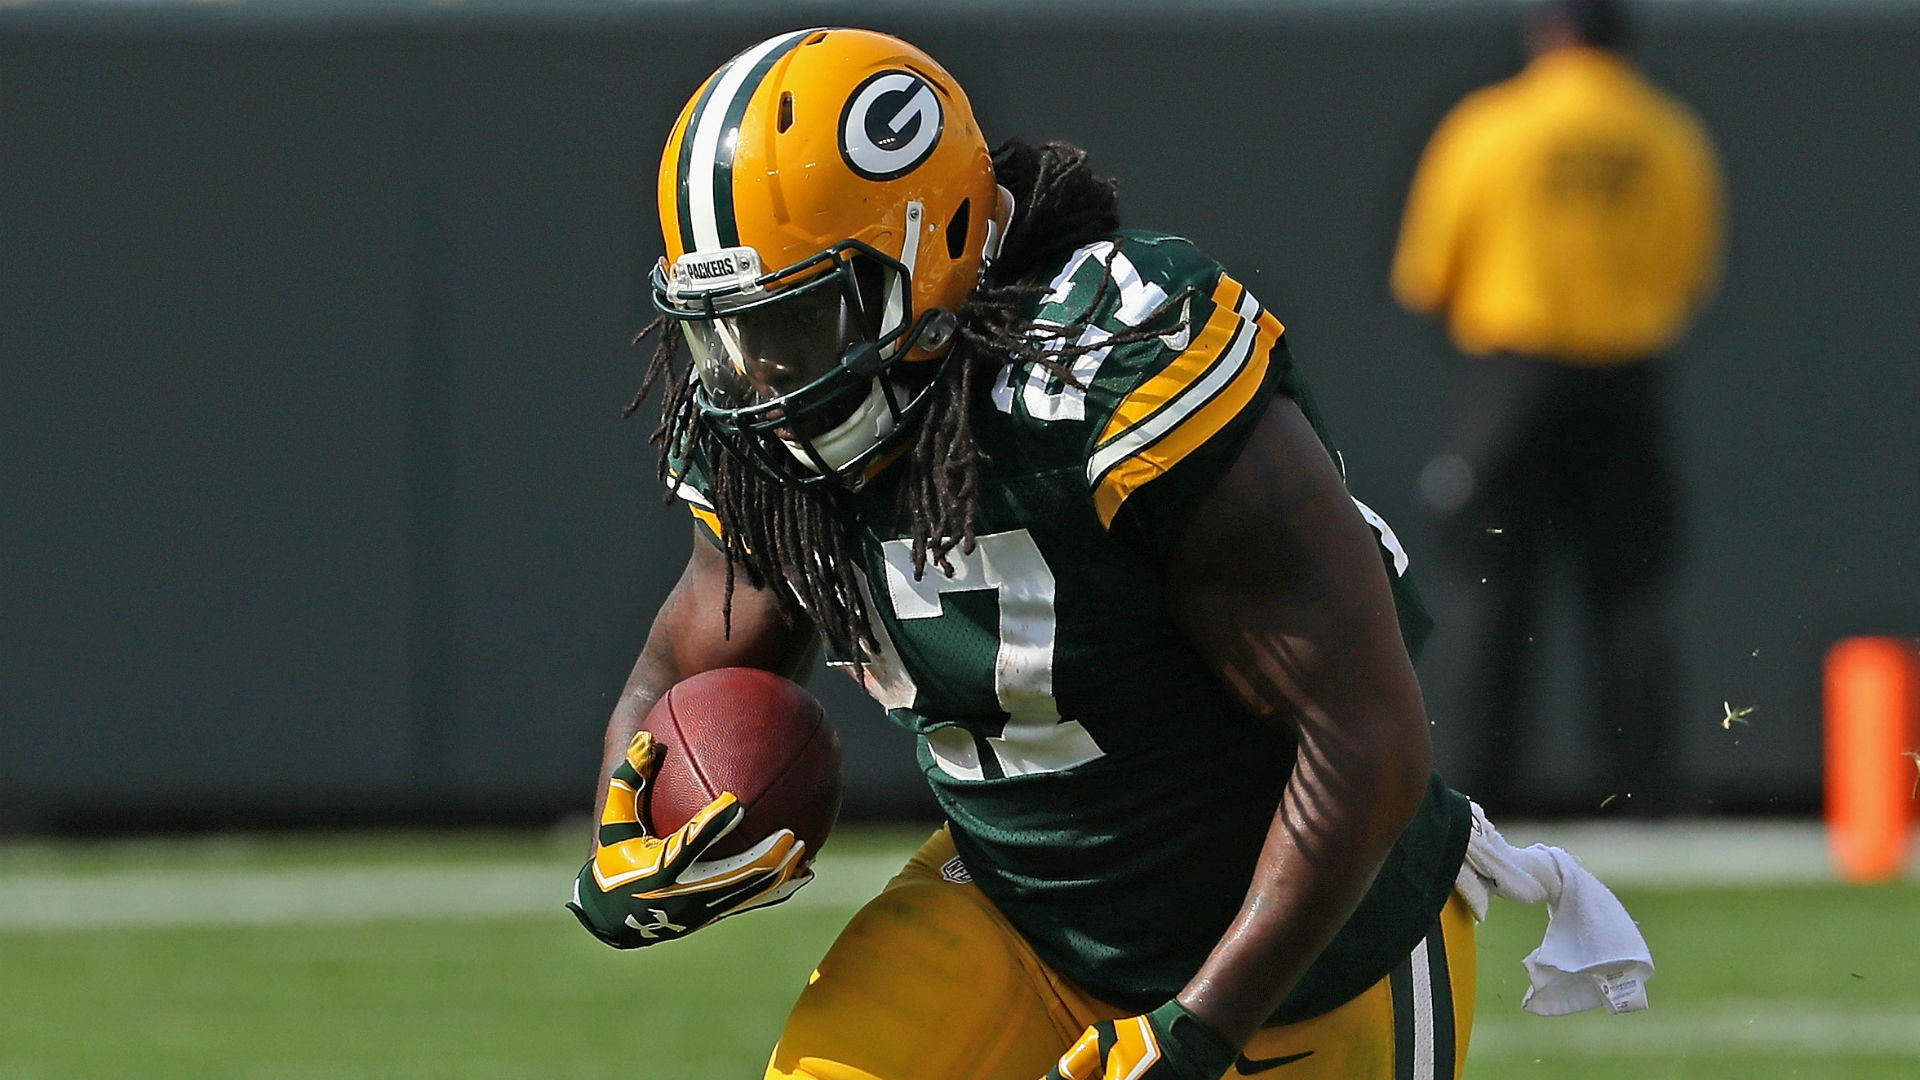 1920x1080 New Seahawks RB Eddie Lacy packed on more than 30 pounds this offseason,  per report